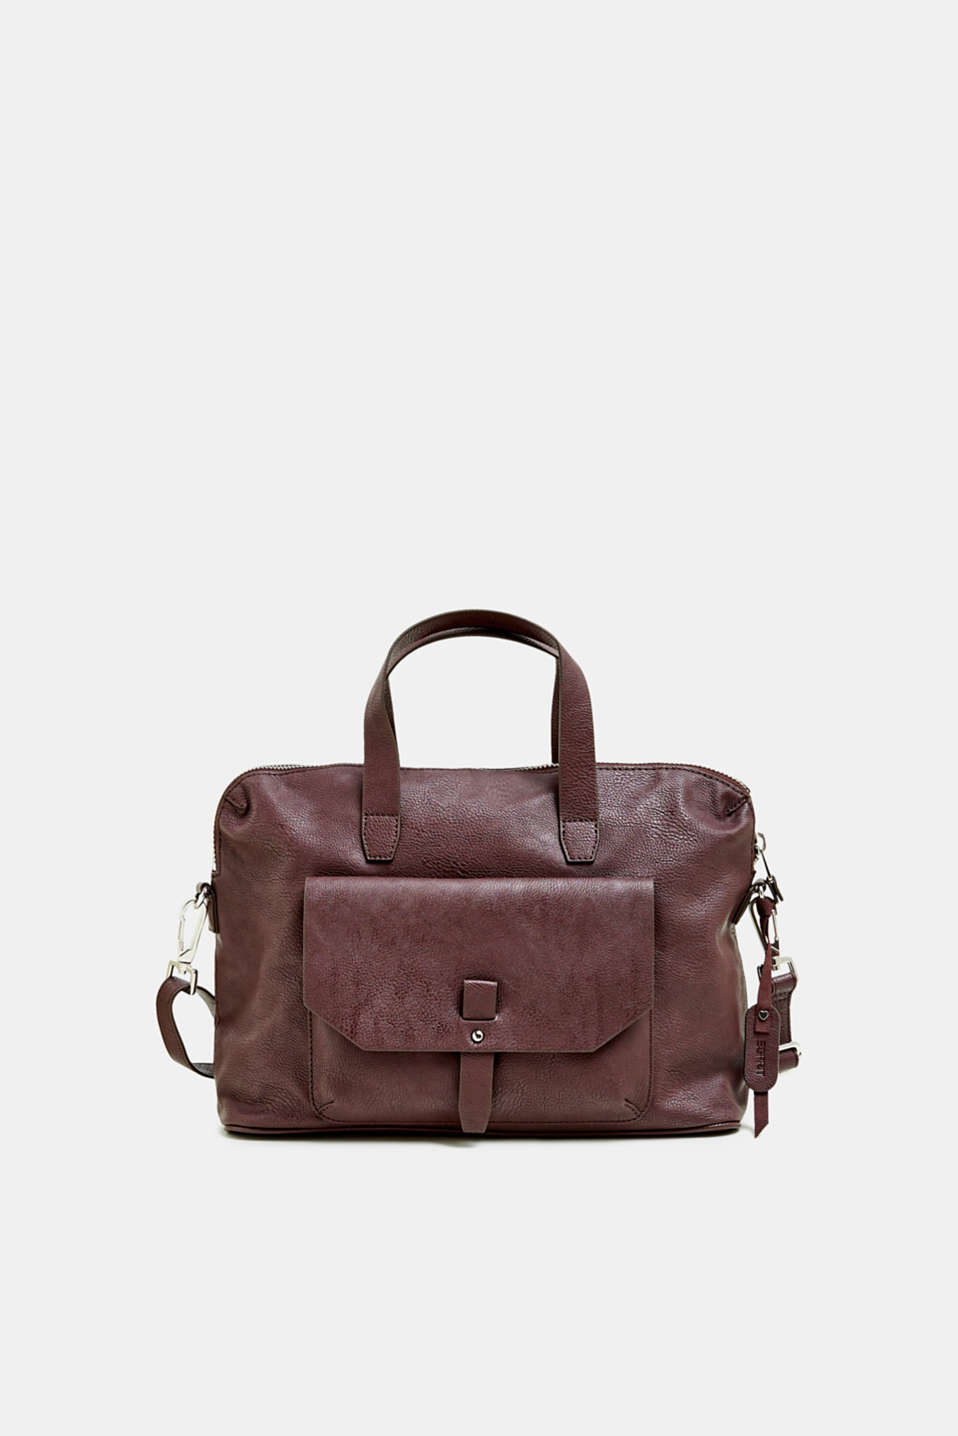 Esprit - Working bag in faux leather